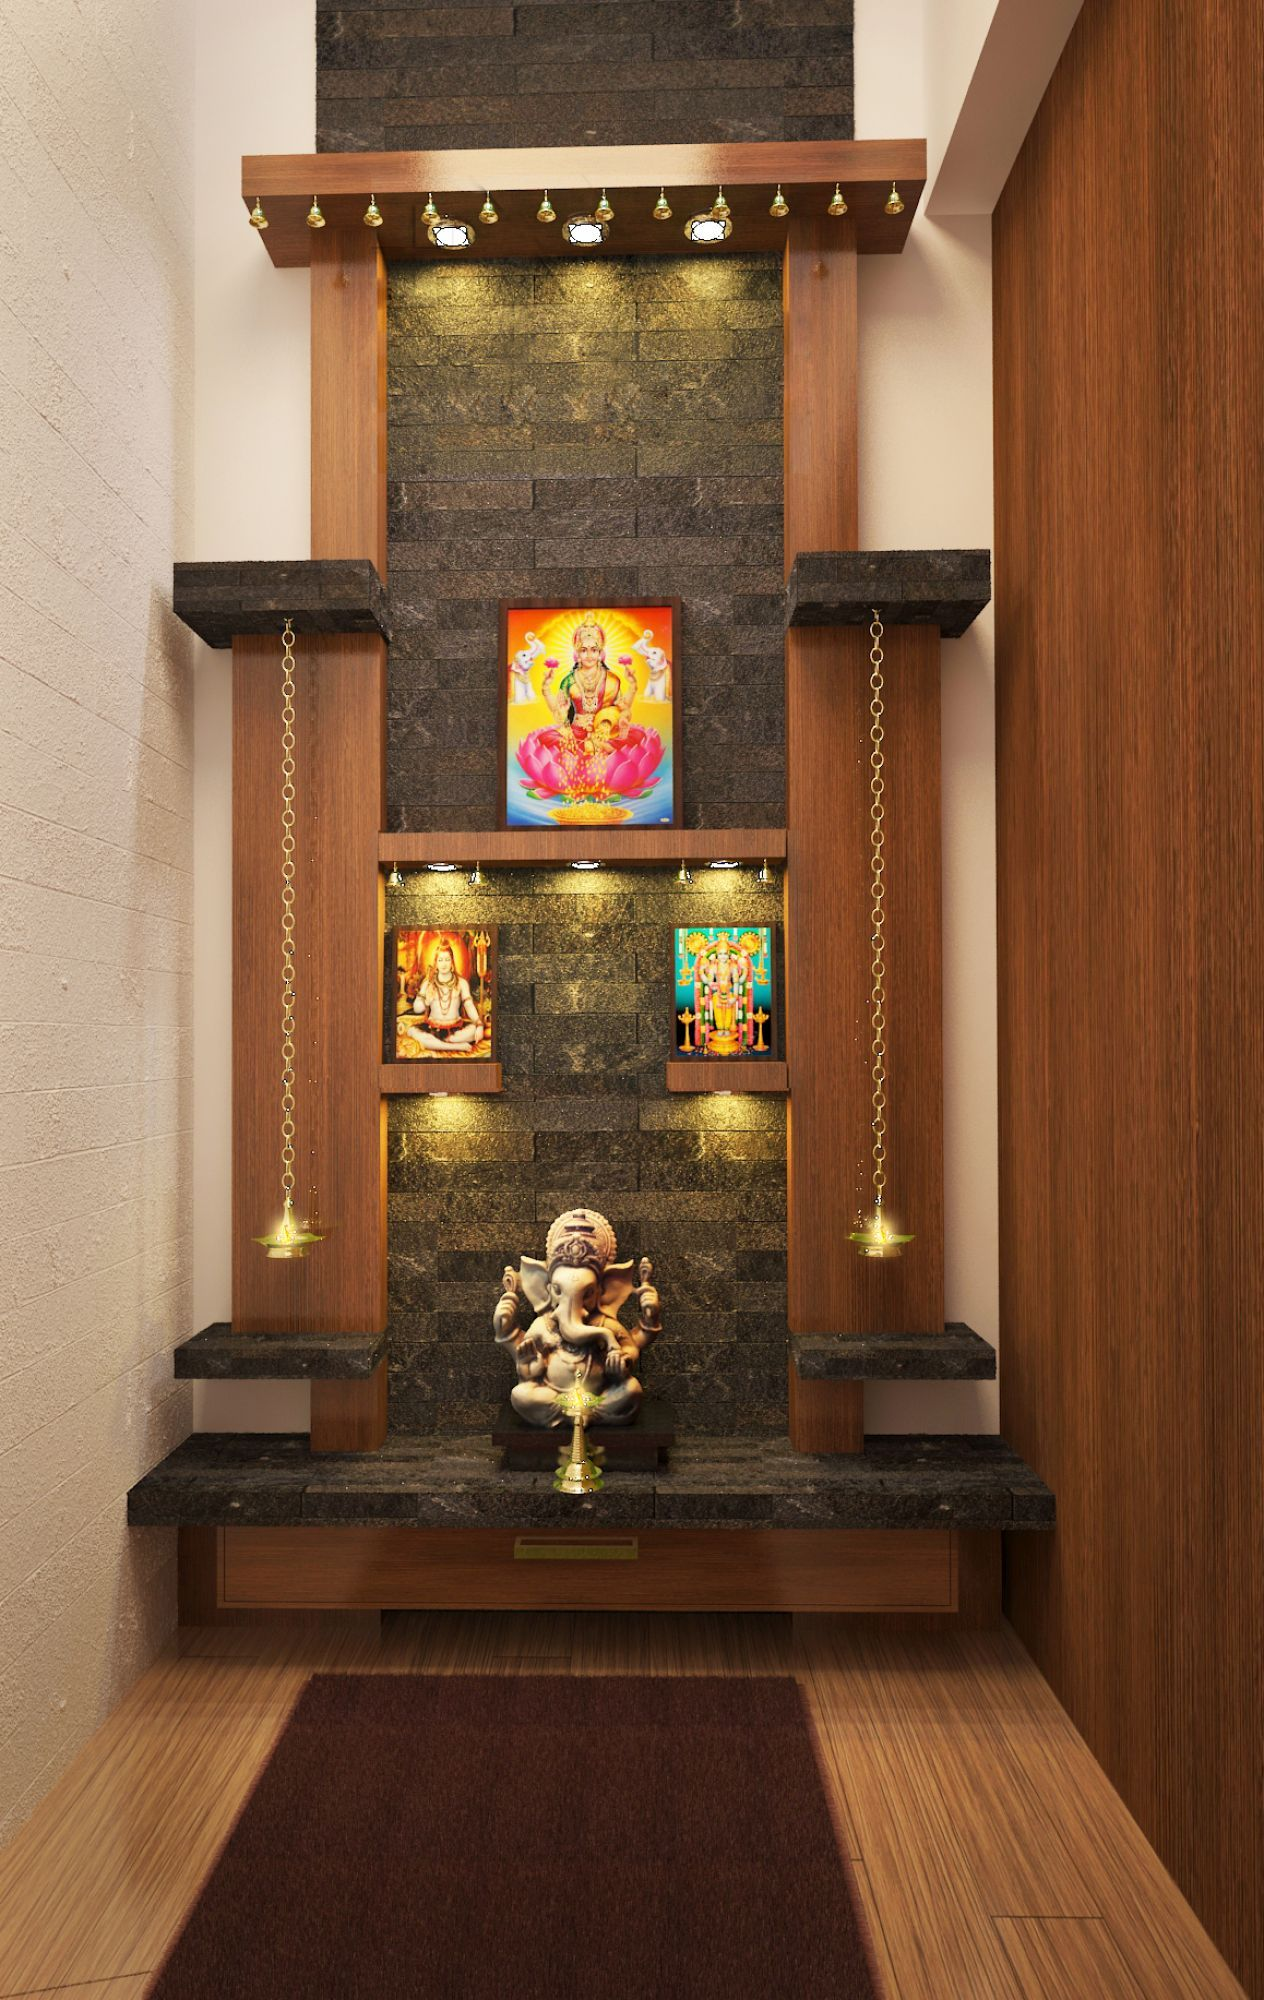 Pooja Room Door Designs Pooja Room: 05_large.jpg (1264×2000)